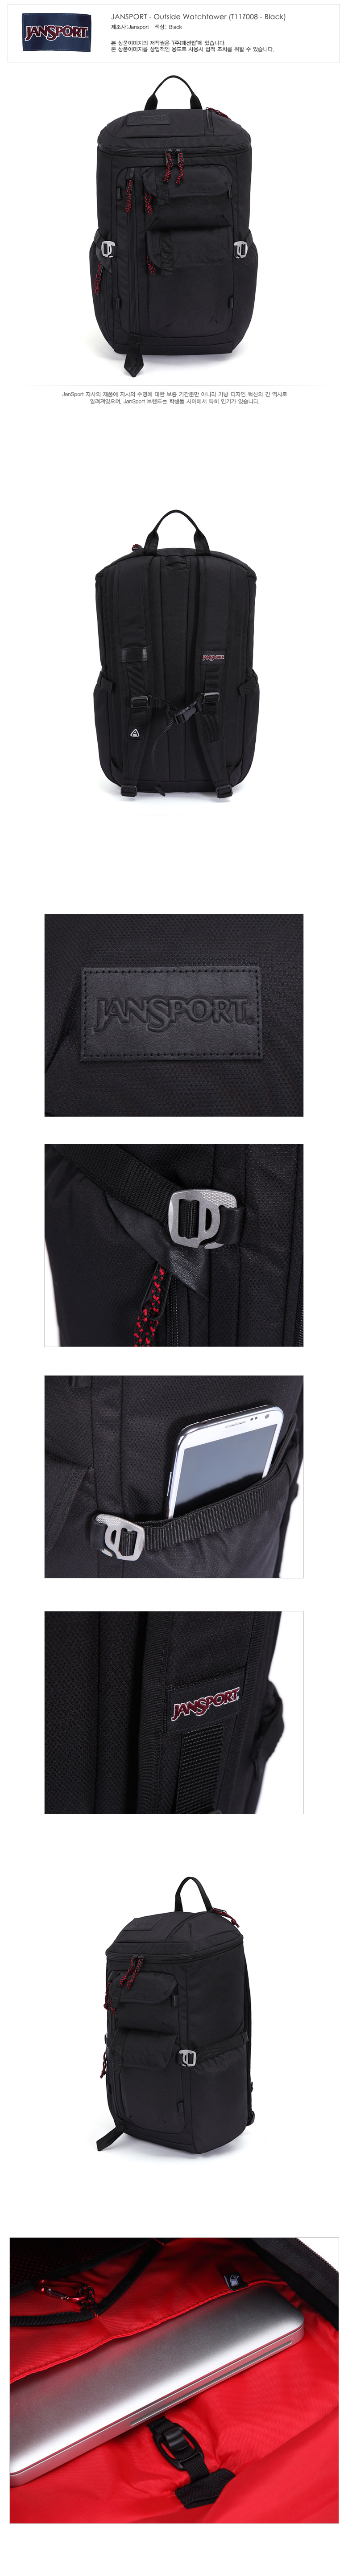 [잔스포츠]JANSPORT - Outside Watchtower (T11Z008 - Black)